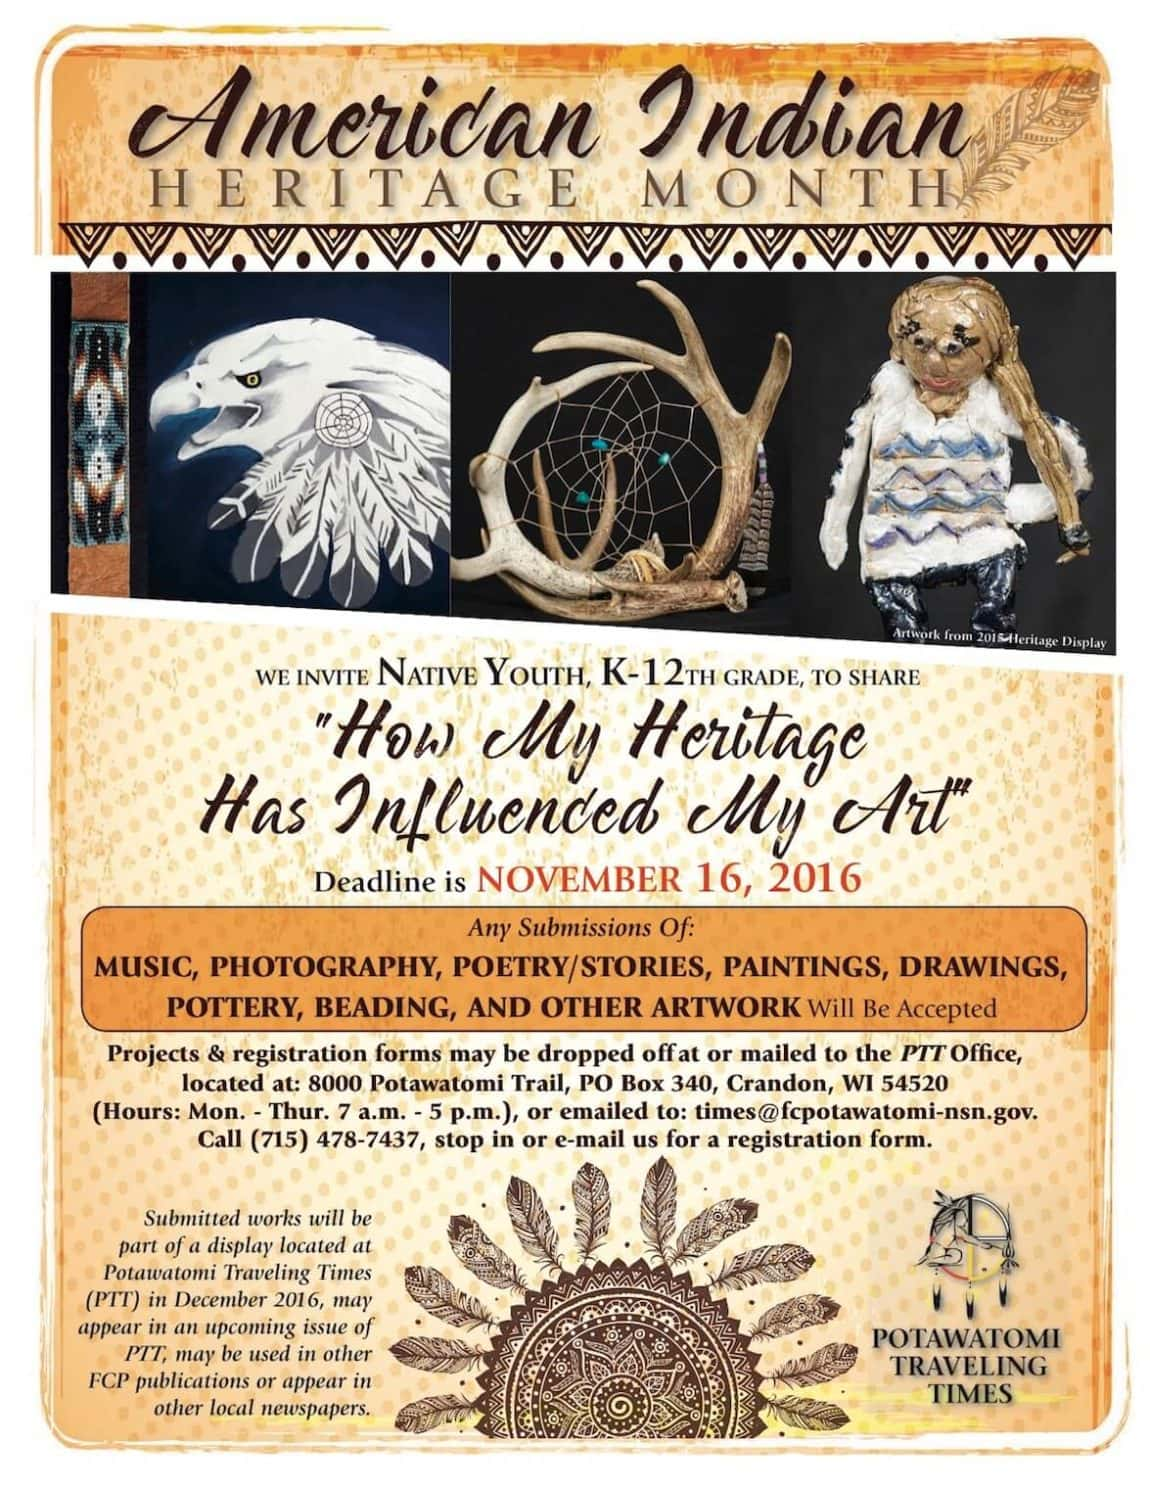 american indian heritage month forest county potawatomi